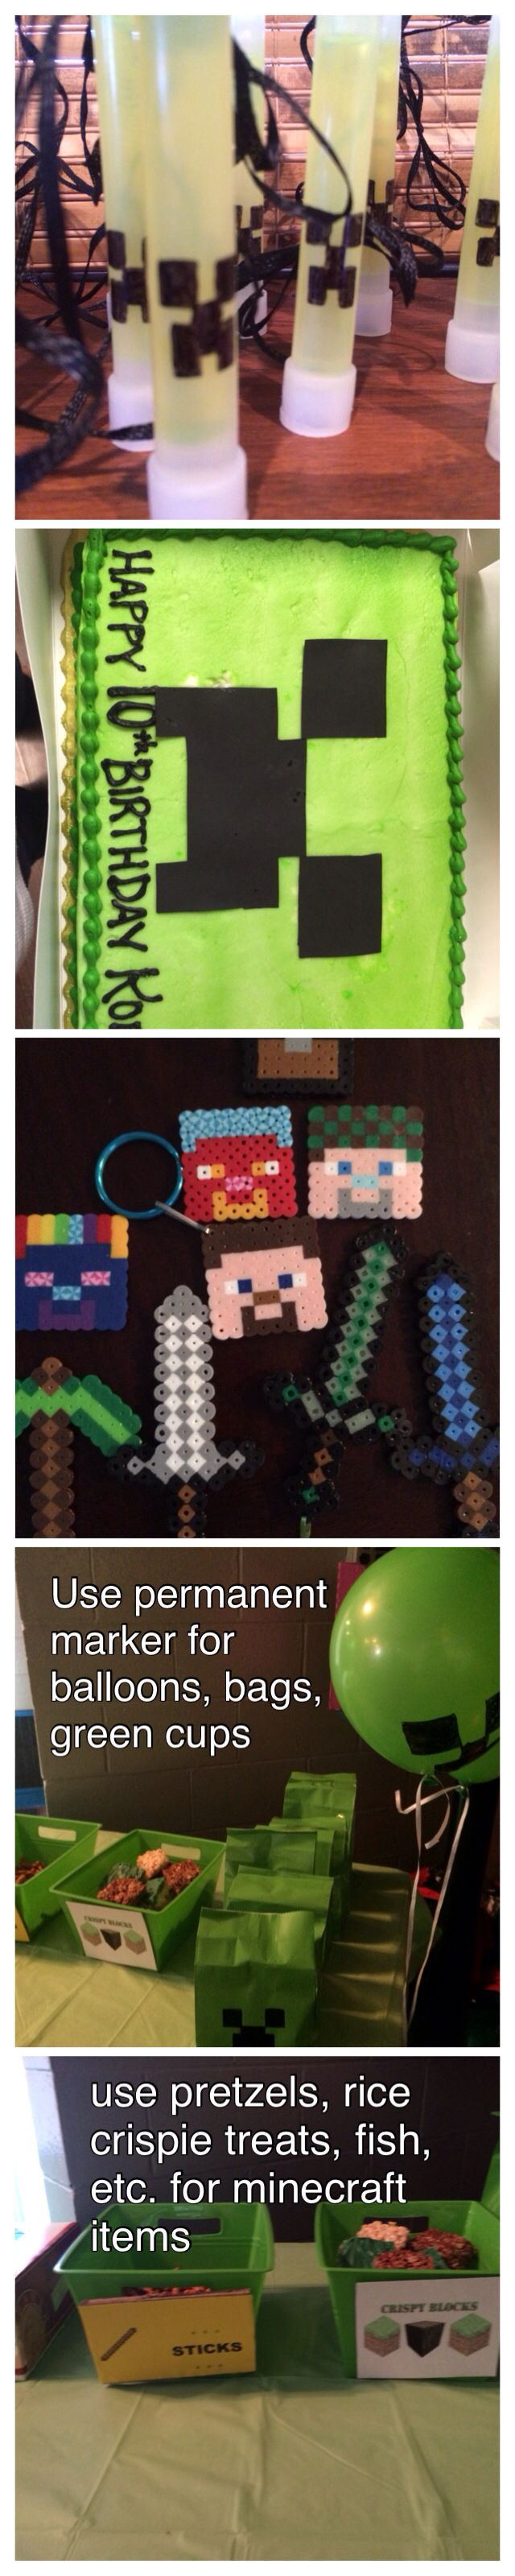 Minecraft Party Ideas #beyondthepark #minecraft